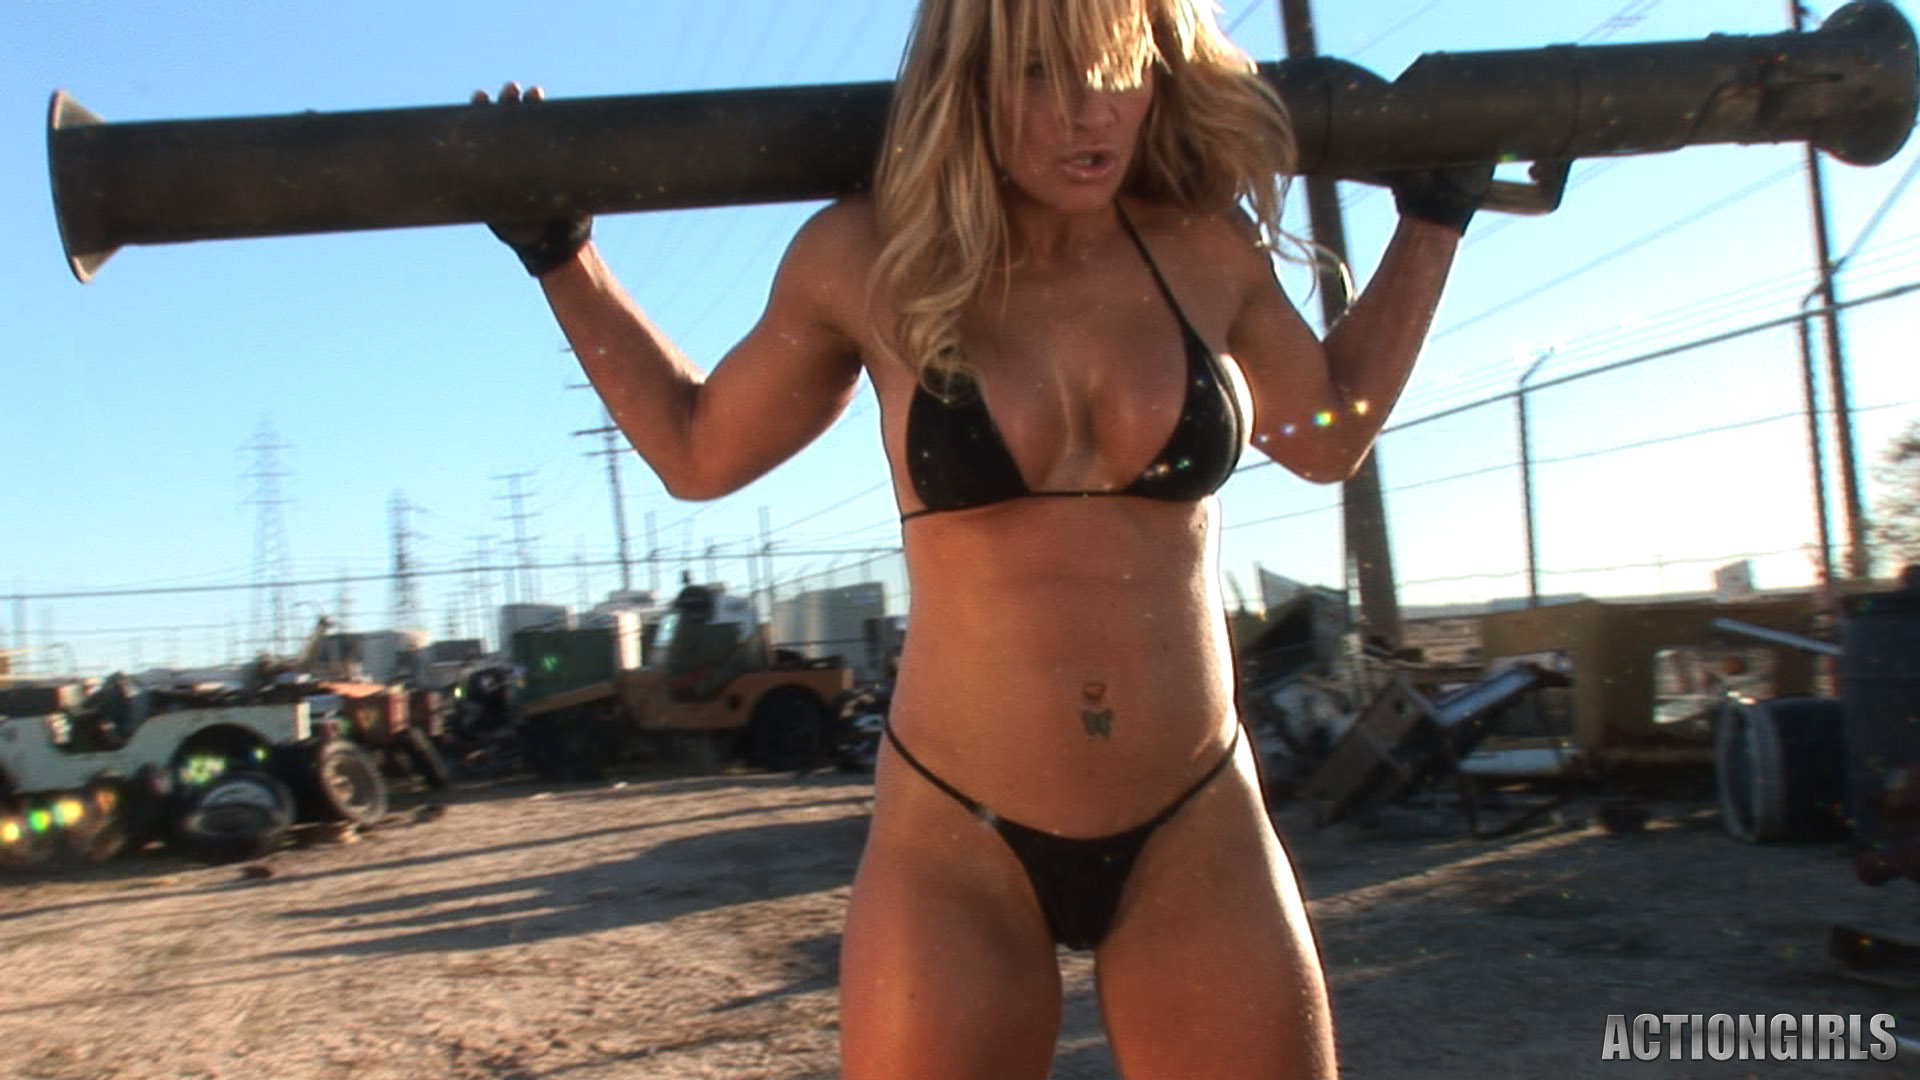 ActionGirls fitness girl Michelle gets sweaty - Feel the curves boobs ...